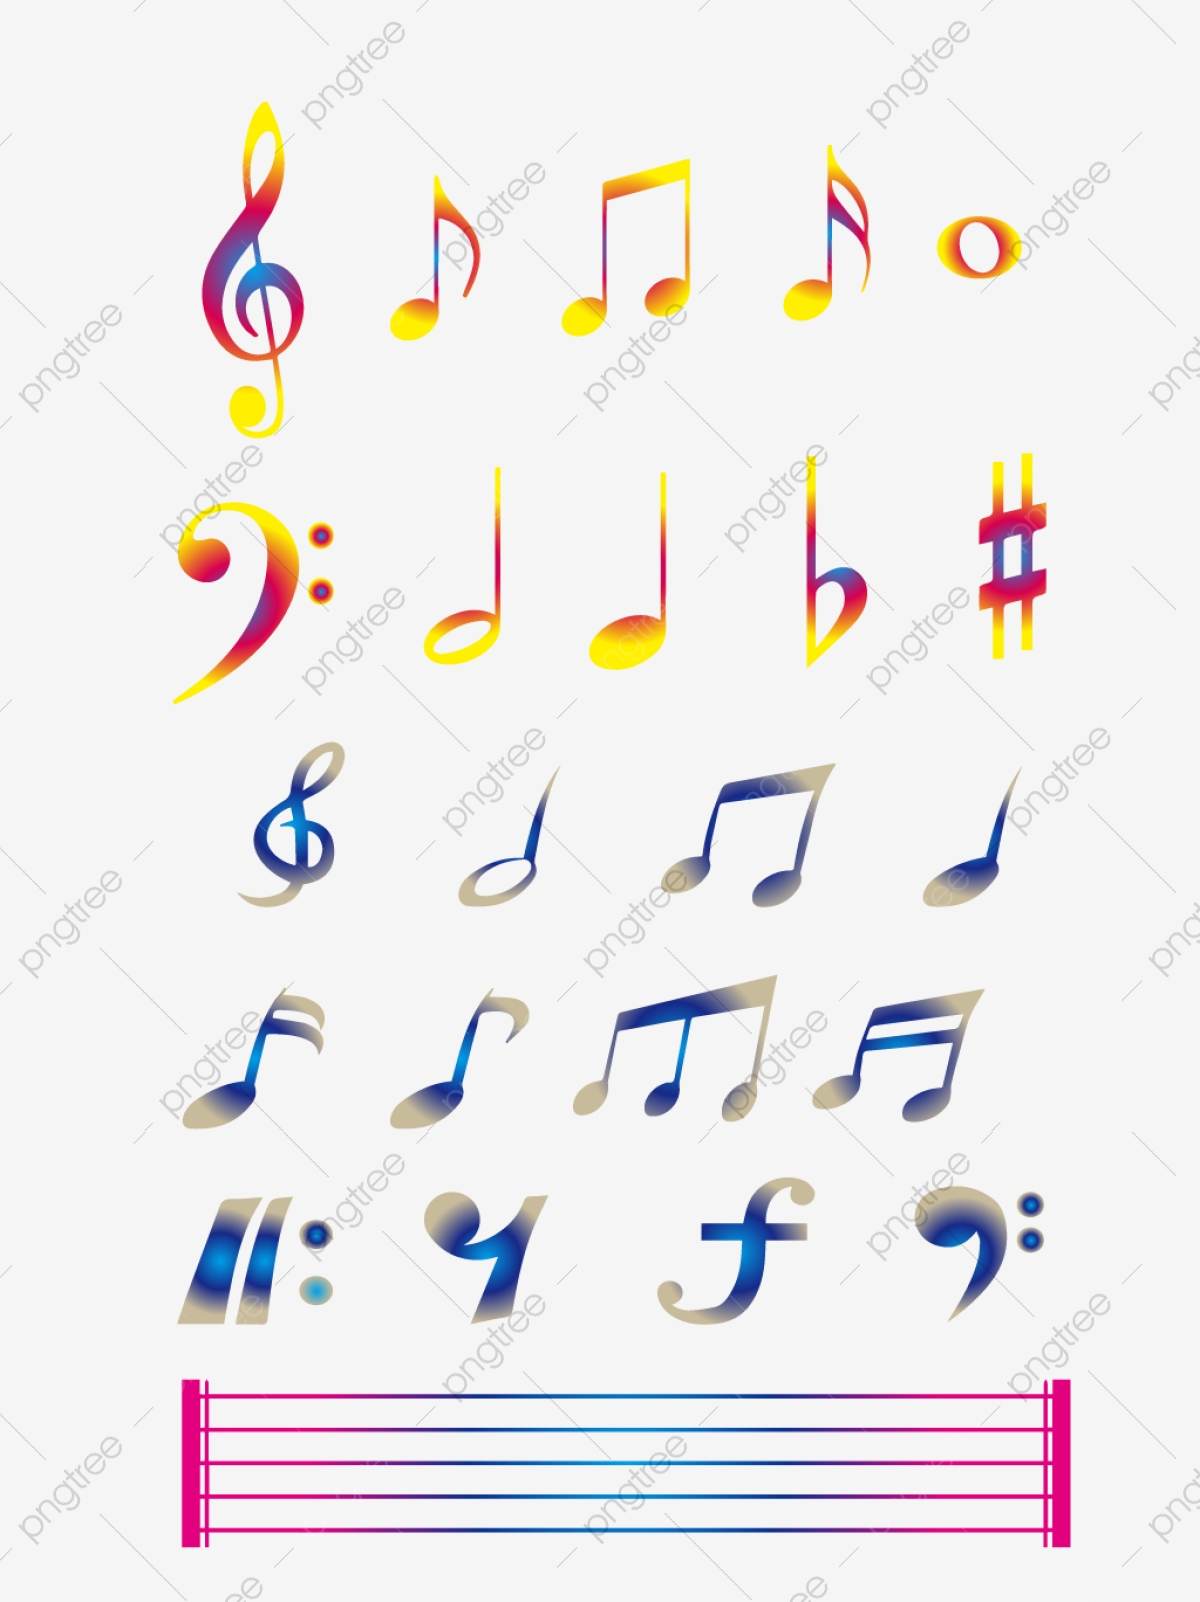 Colored Gradient Music Notes Gradient Color Notes Png And Vector With Transparent Background For Free Download